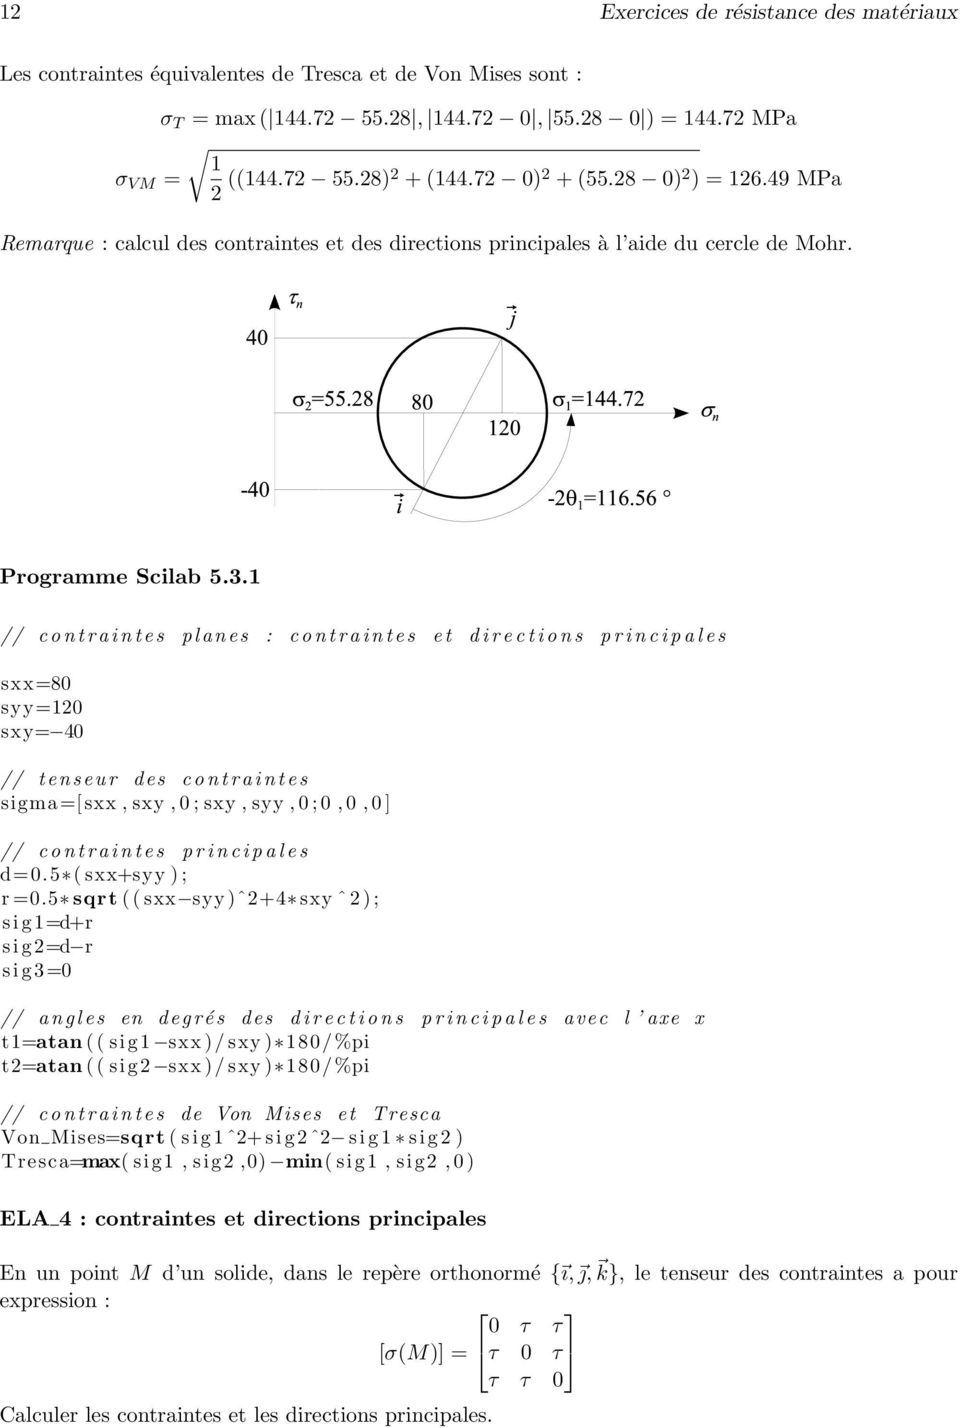 exercice java avec solution pdf